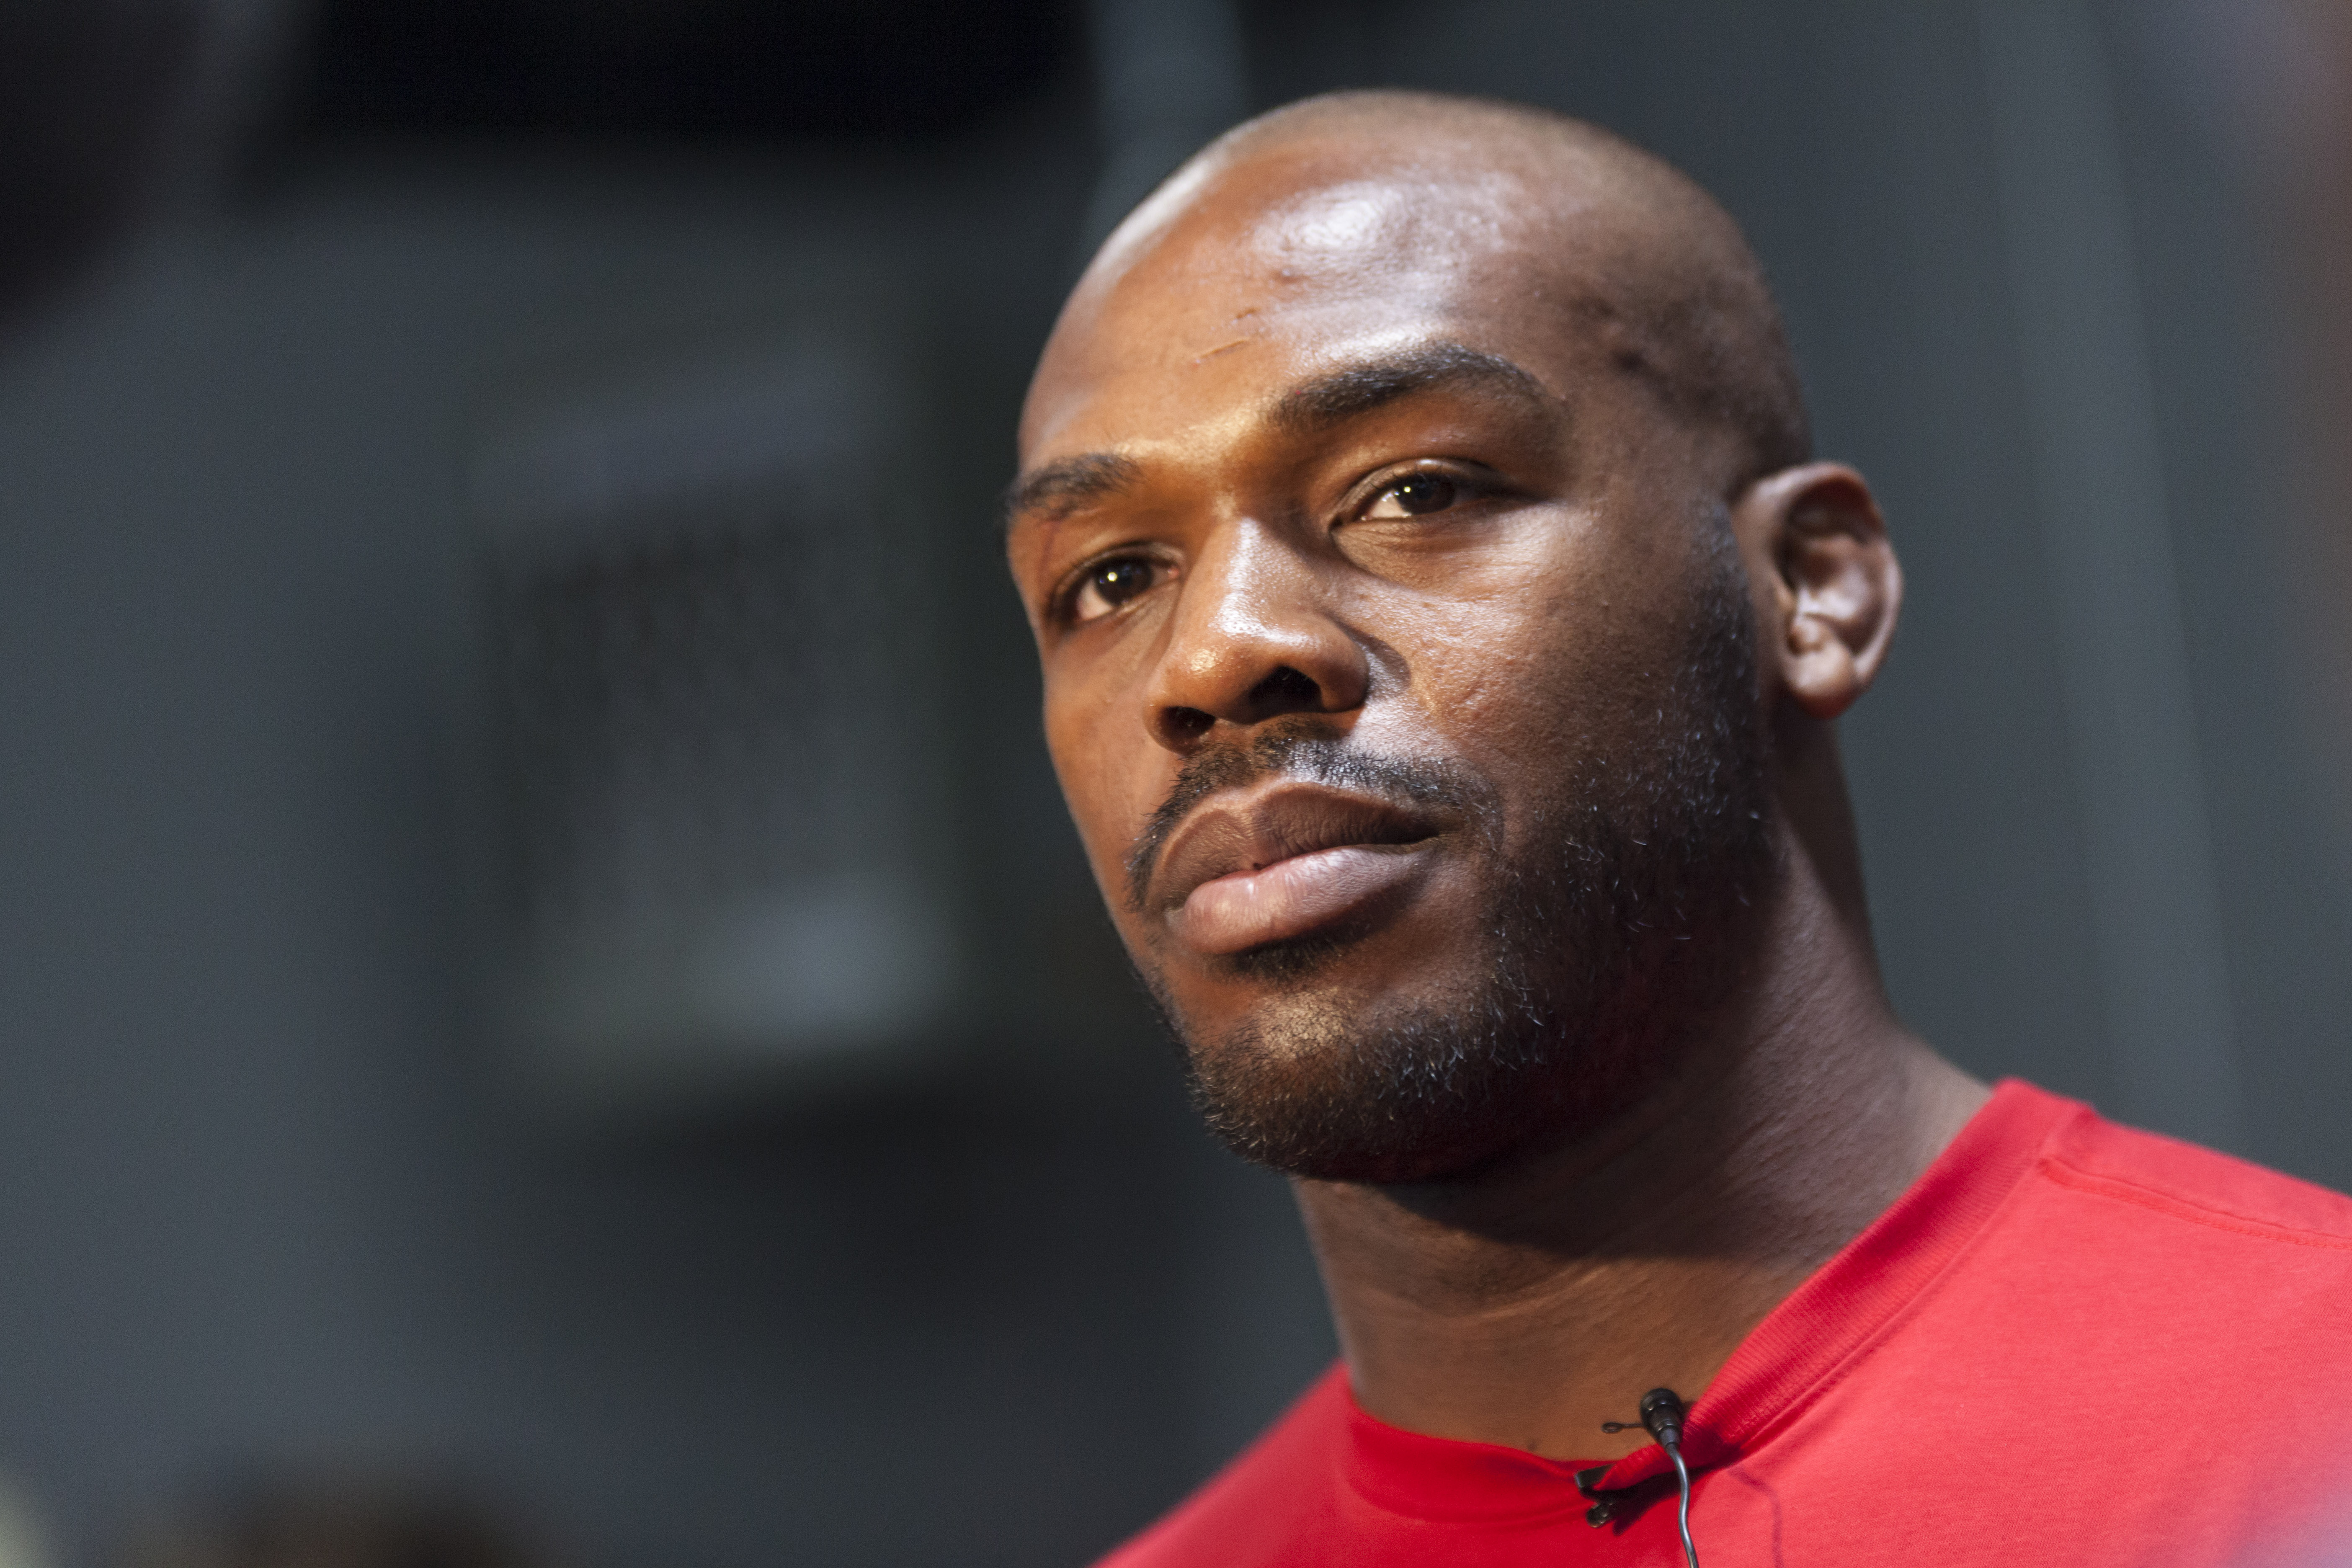 """Jon """"Bones"""" Jones, the UFC Lightweight Champion, is wanted for questioning after a hit-and-run accident in Albuquerque, New Mexico on April 26. (Getty)"""